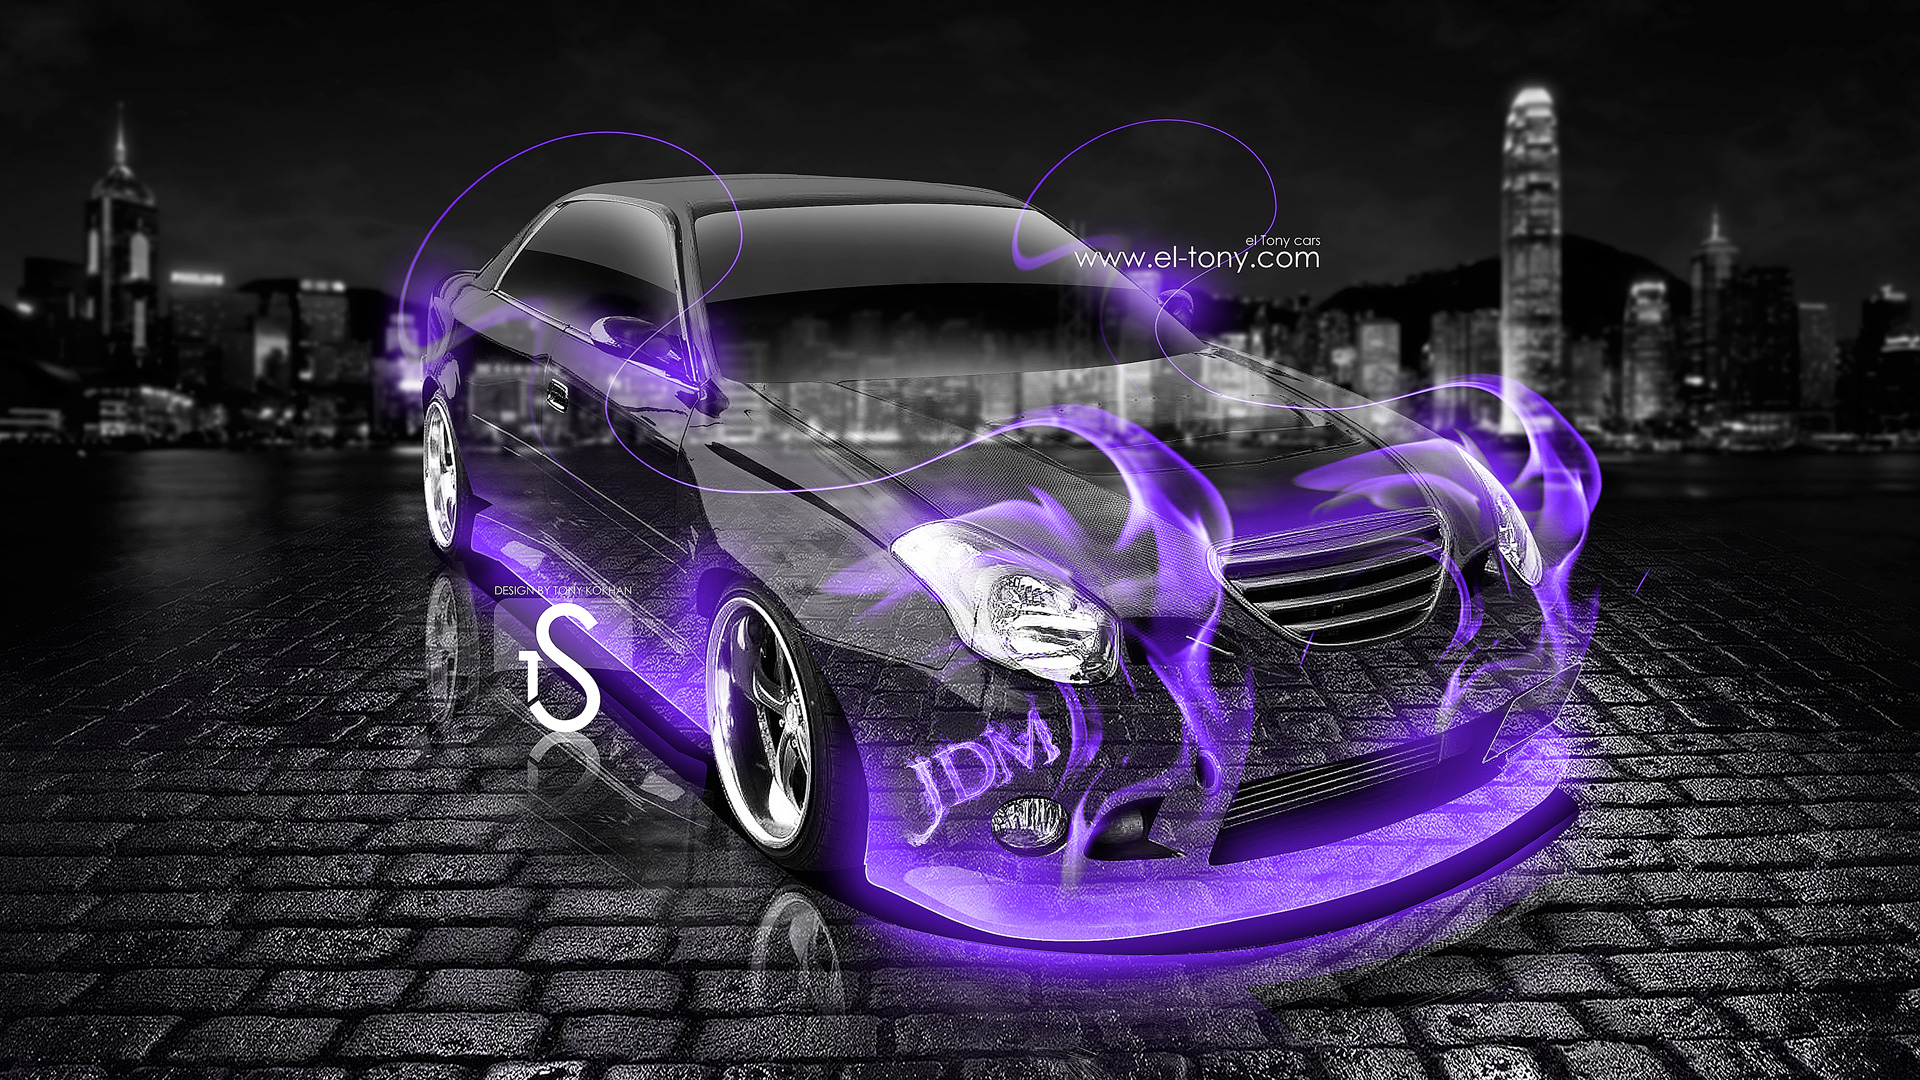 Charmant Toyota Verossa Tuning Violet Fire Crystal Car 2013